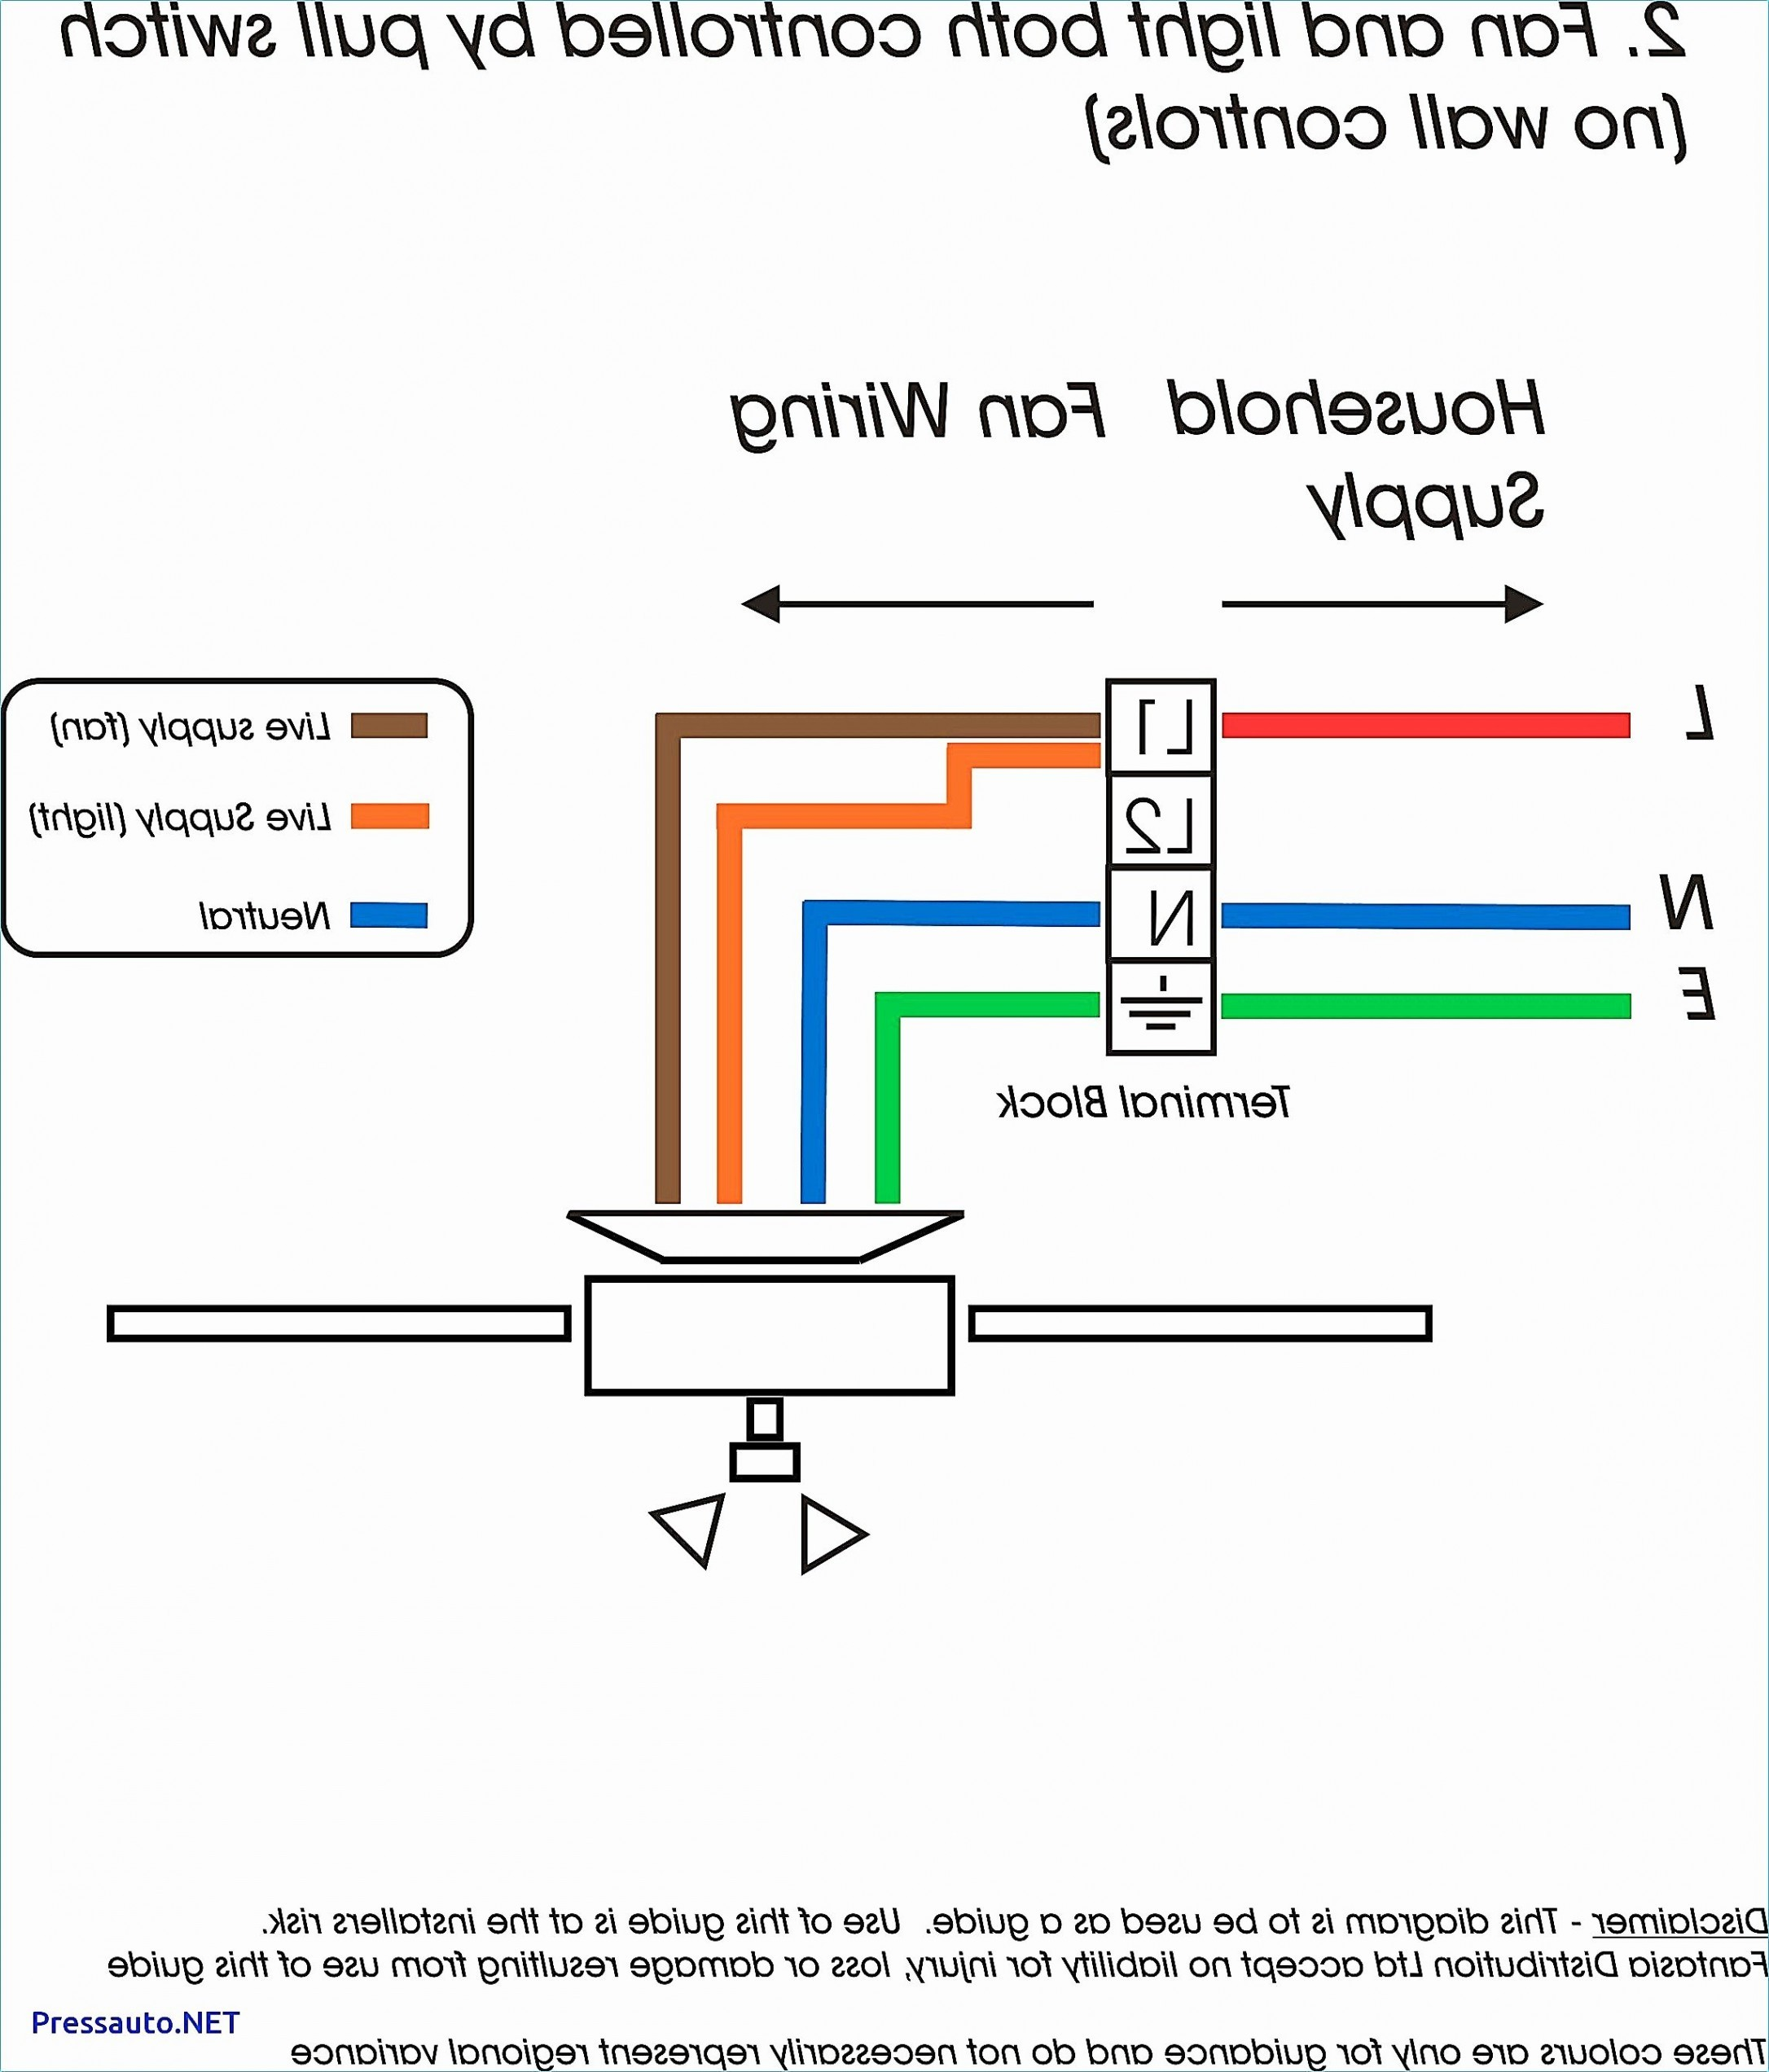 Cat5 B Wiring Diagram Cat 5 Wiring Diagram B – Cat 5 B Wiring Diagram Luxury Fresh Cat5 Of Cat5 B Wiring Diagram